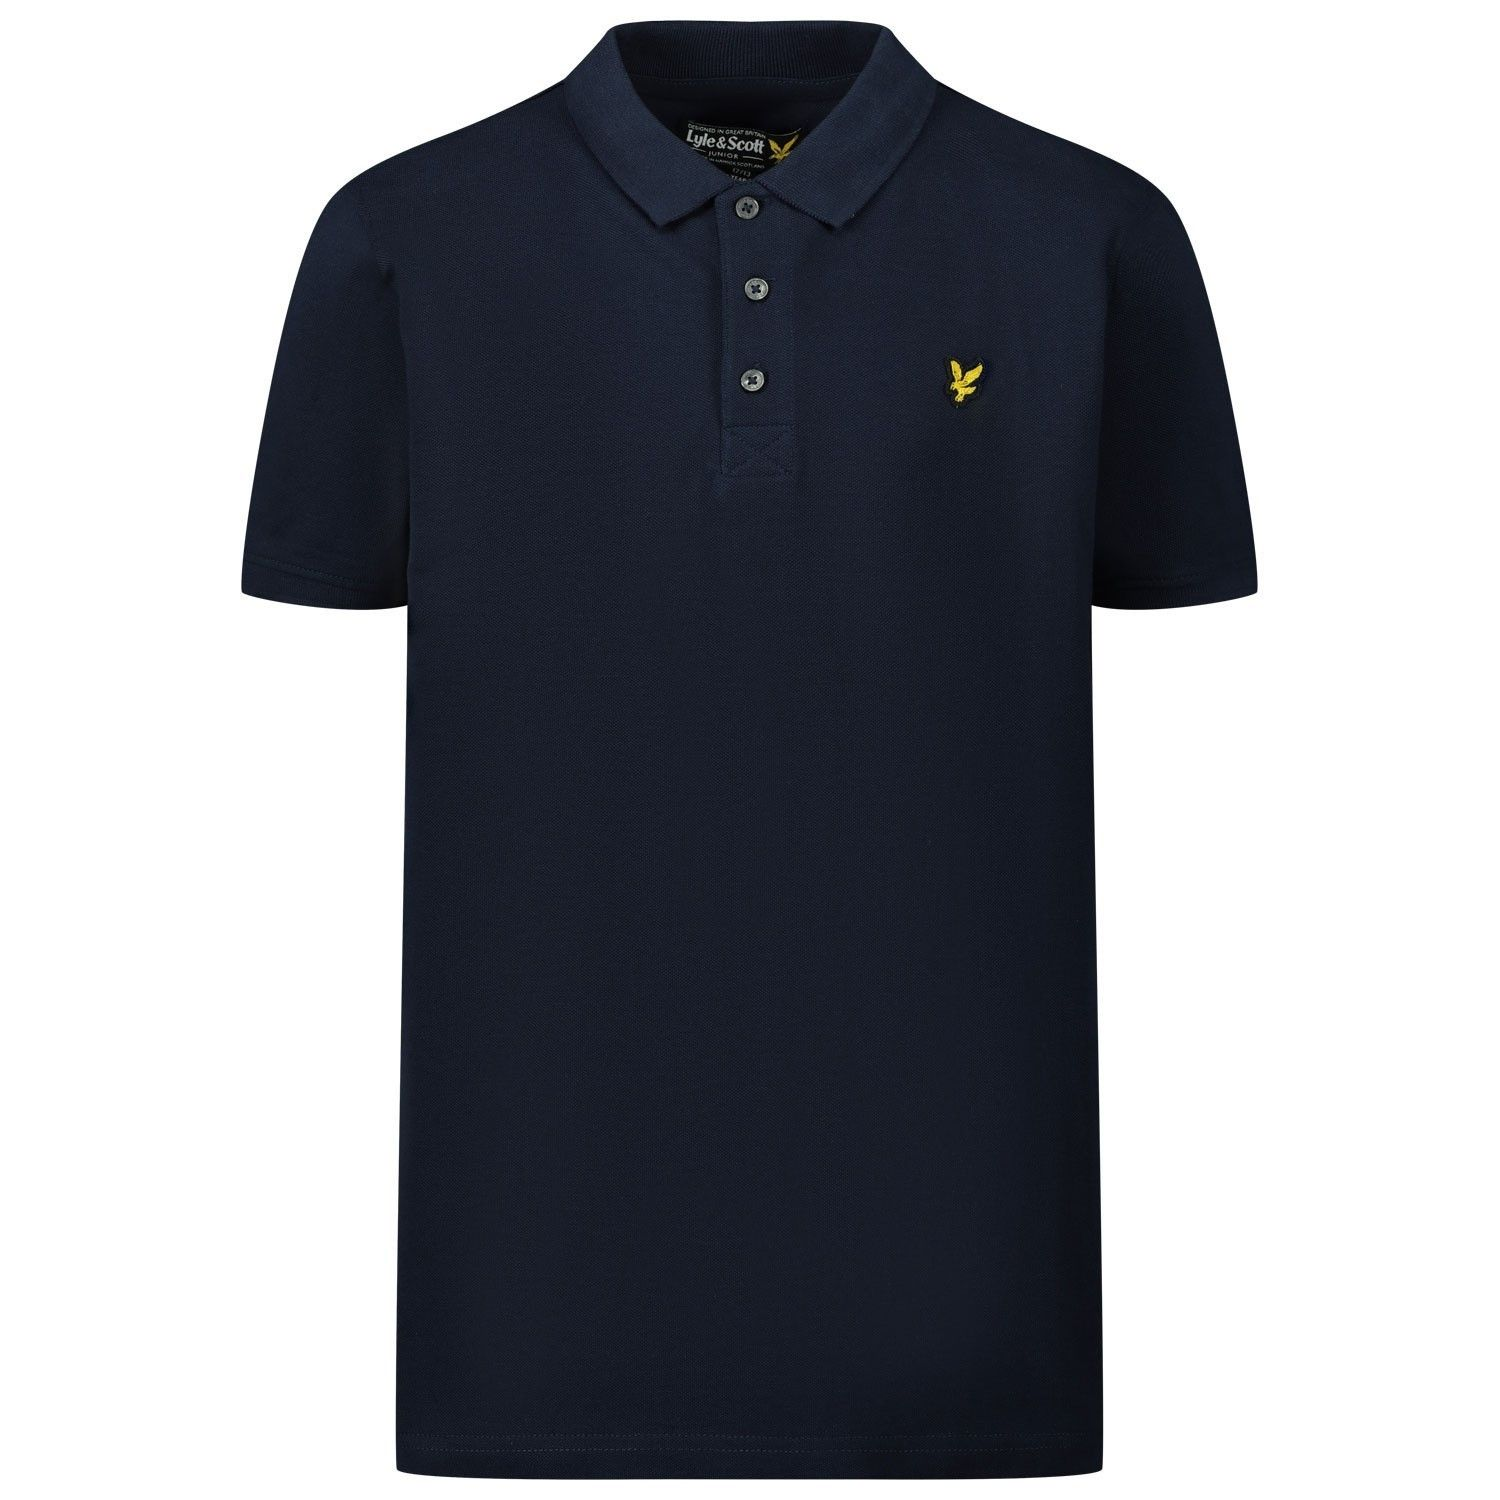 Picture of Lyle & Scott LSC0145S kids polo shirt navy